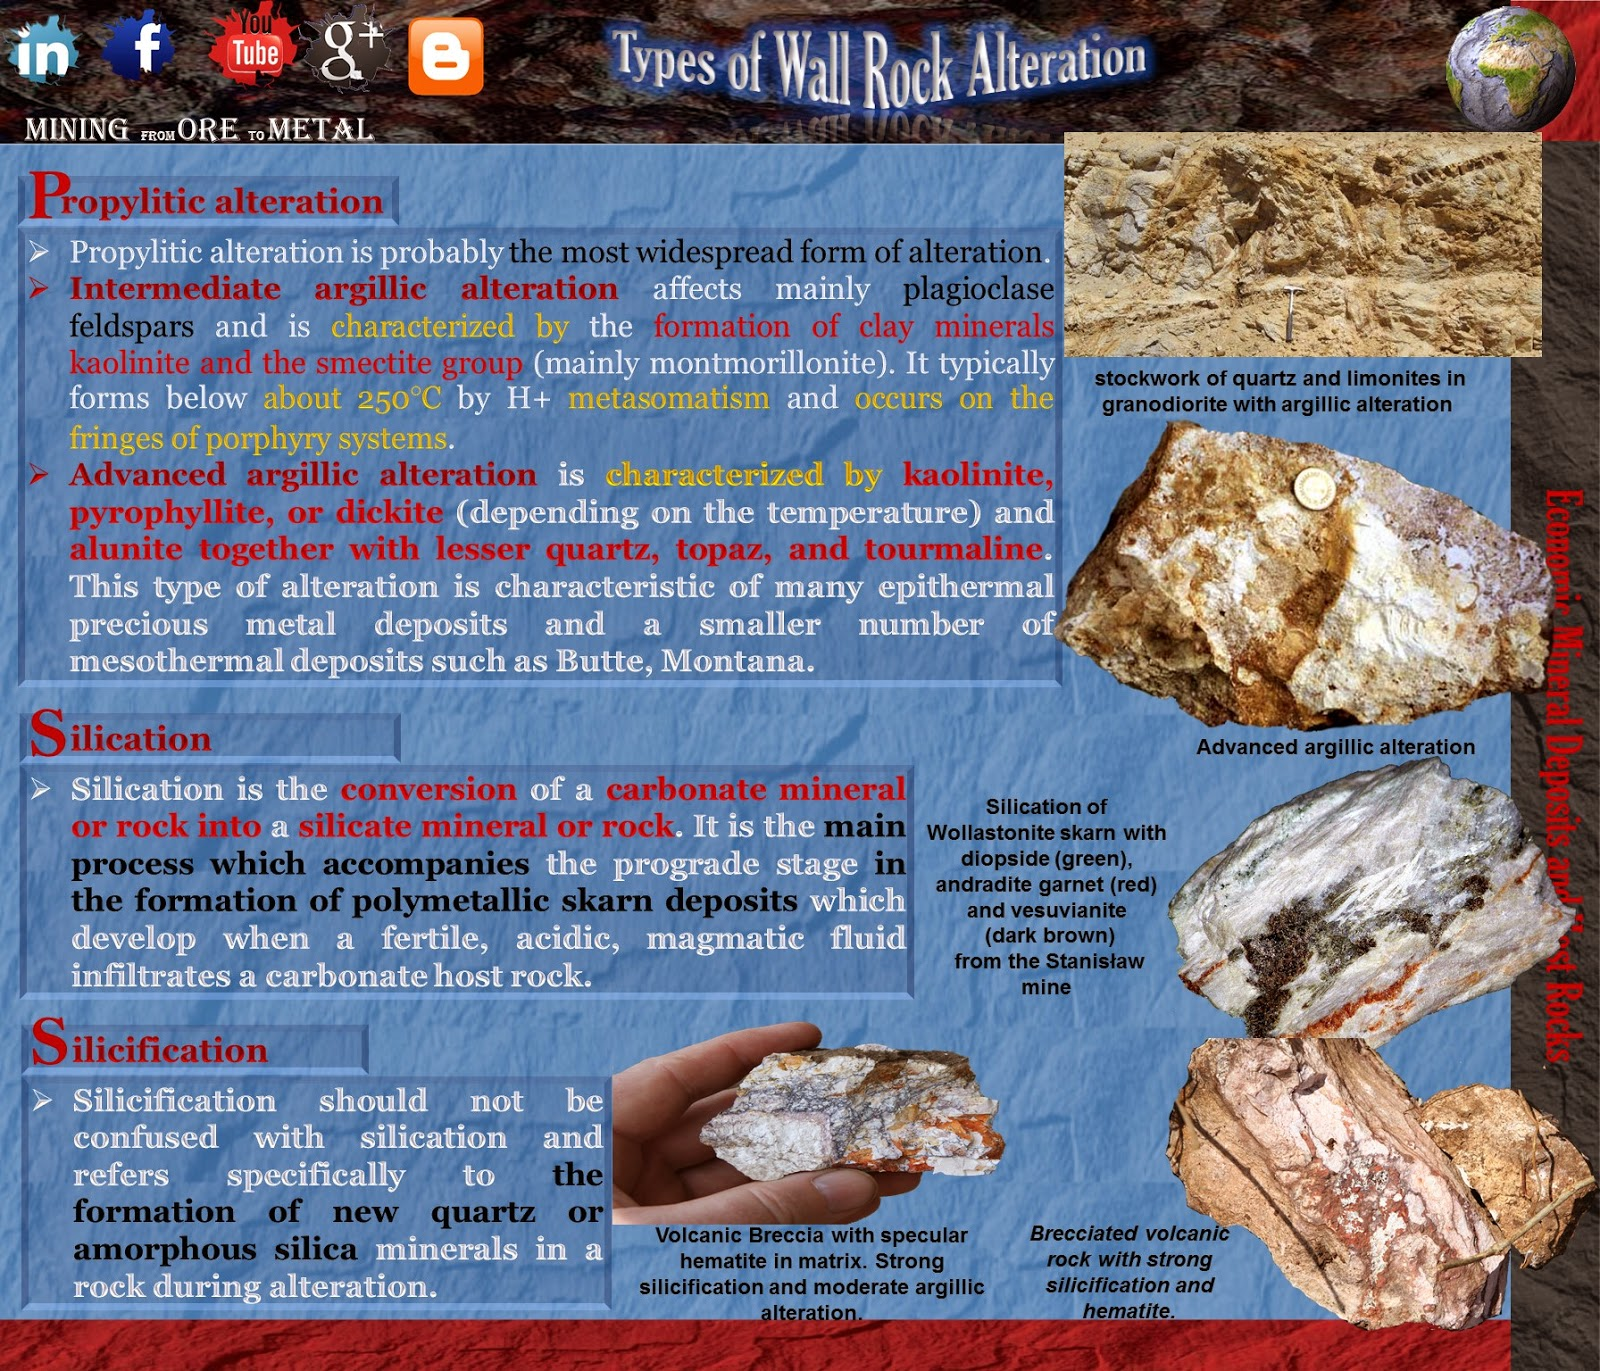 Types of Wall Rock Alteration.